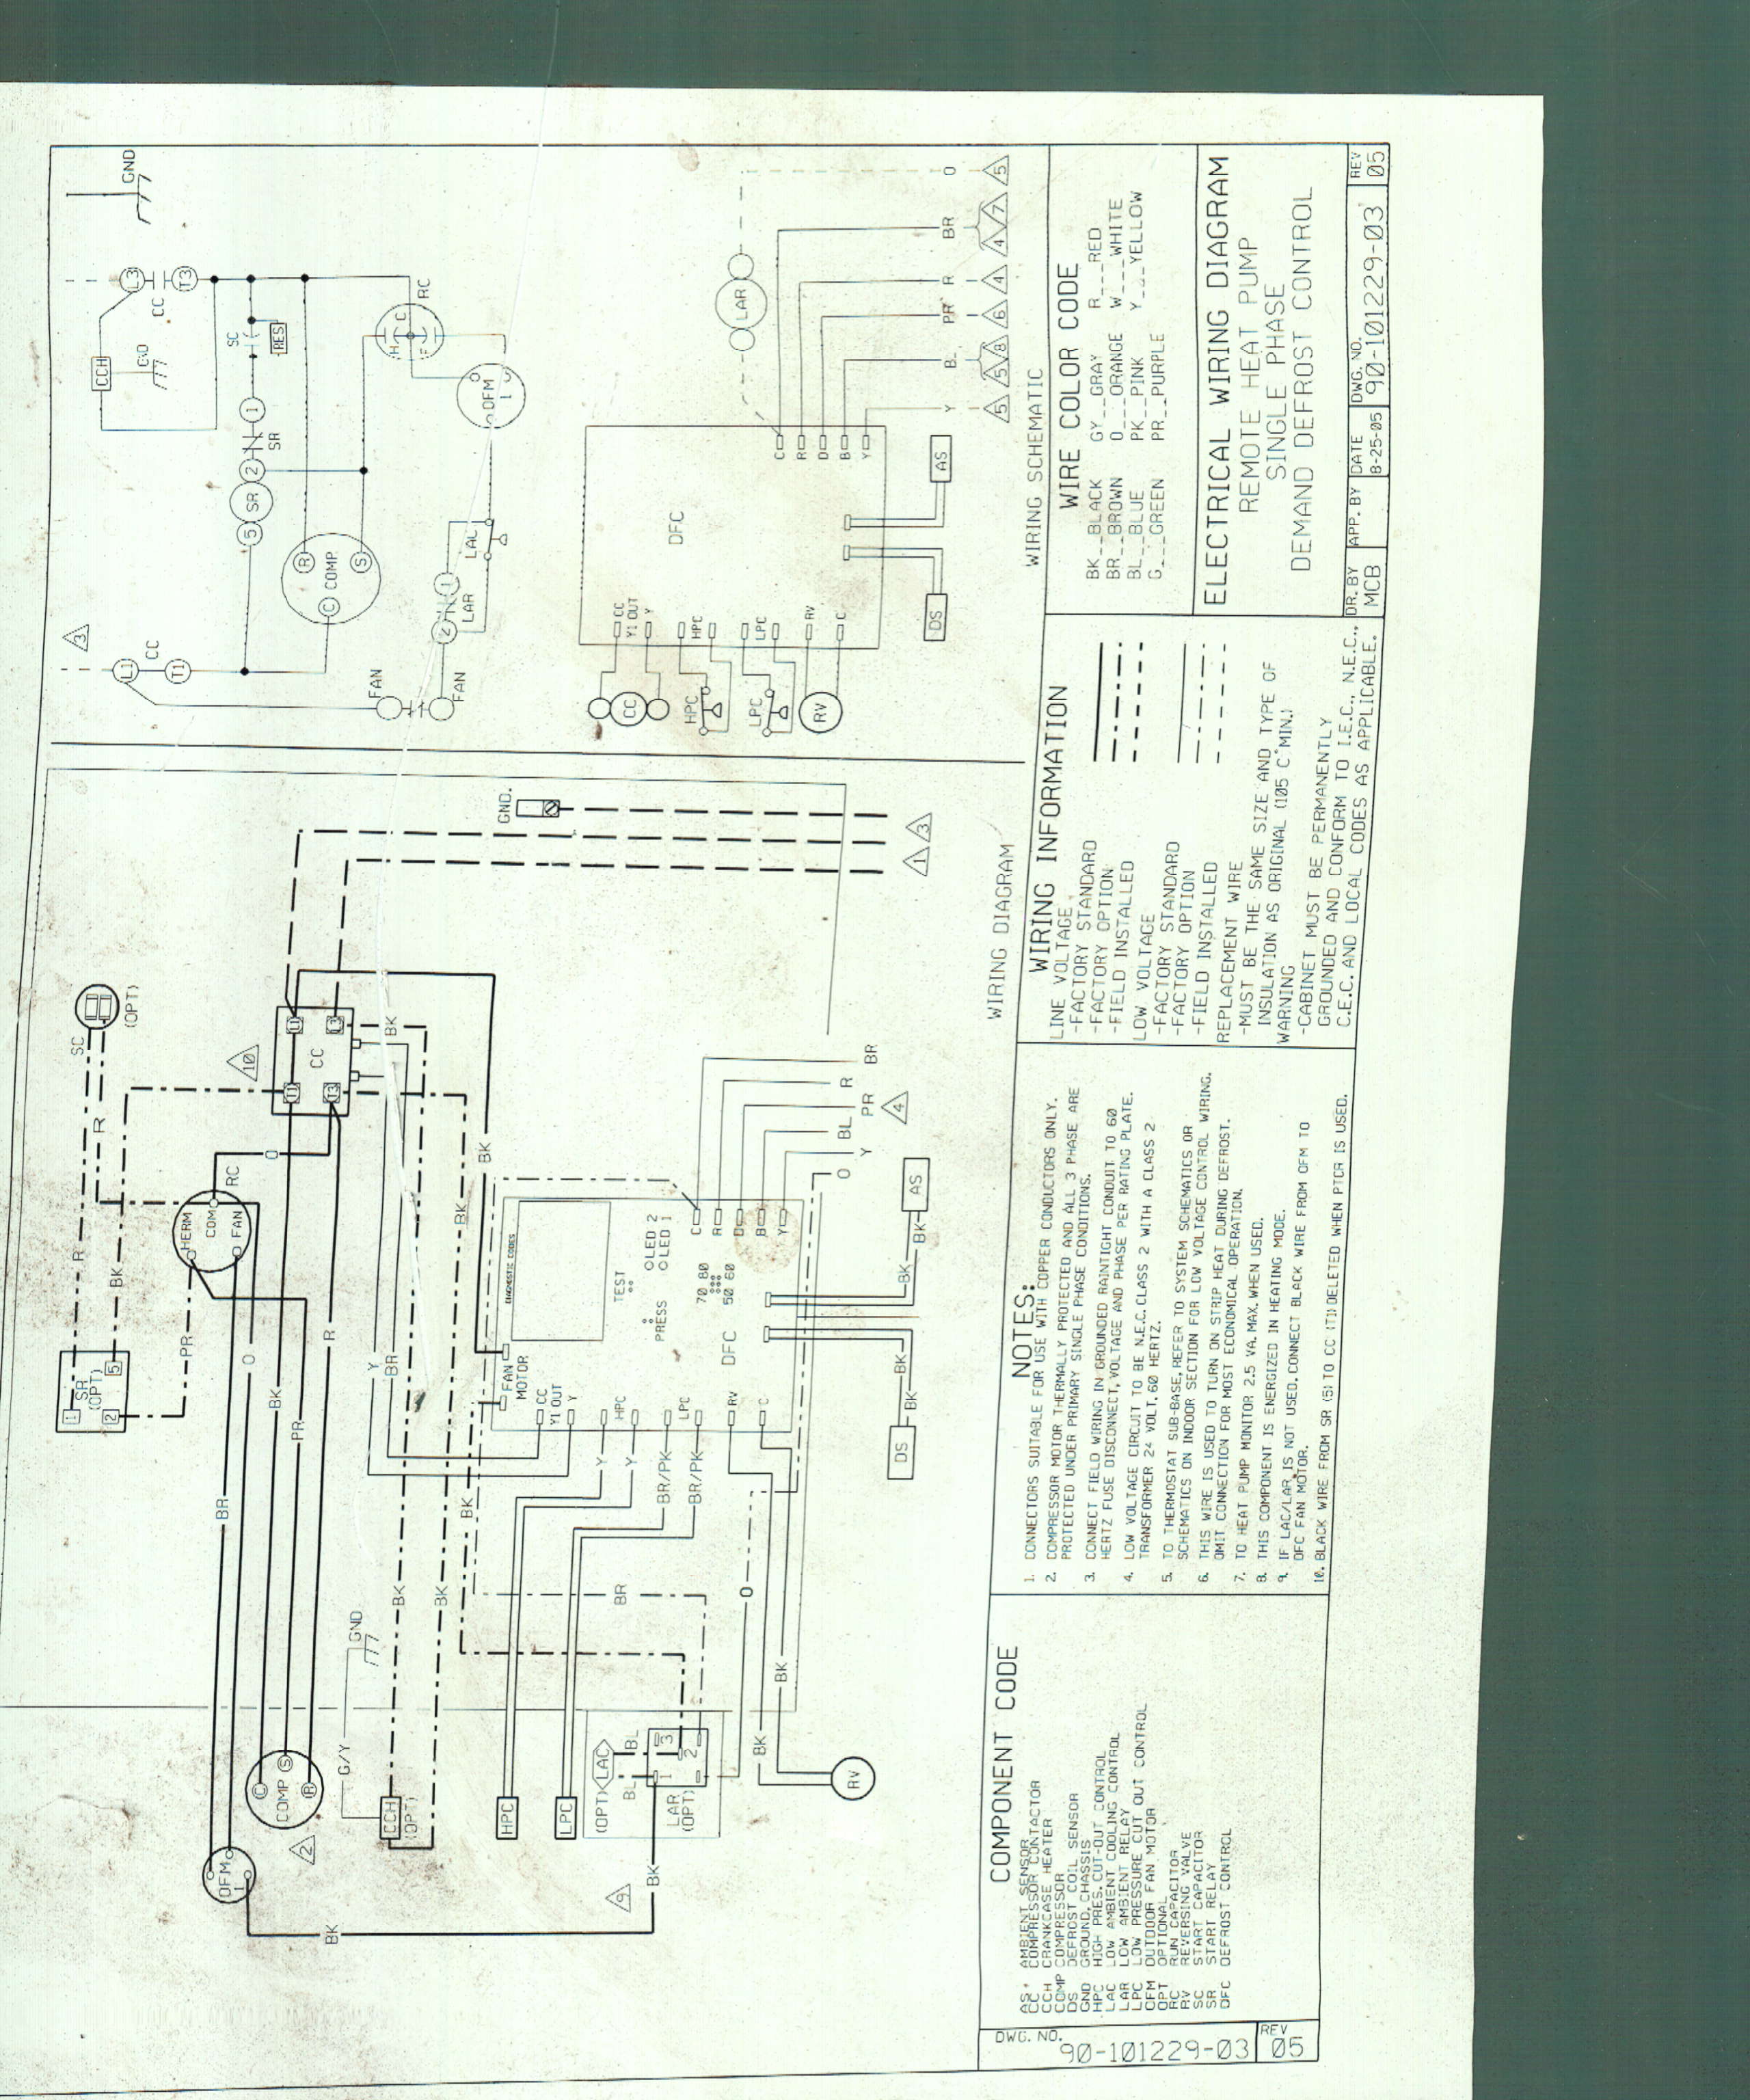 rheem heat pump defrost board wiring diagram 2 ohm dual voice coil sub schematic for ducane furnace get free image